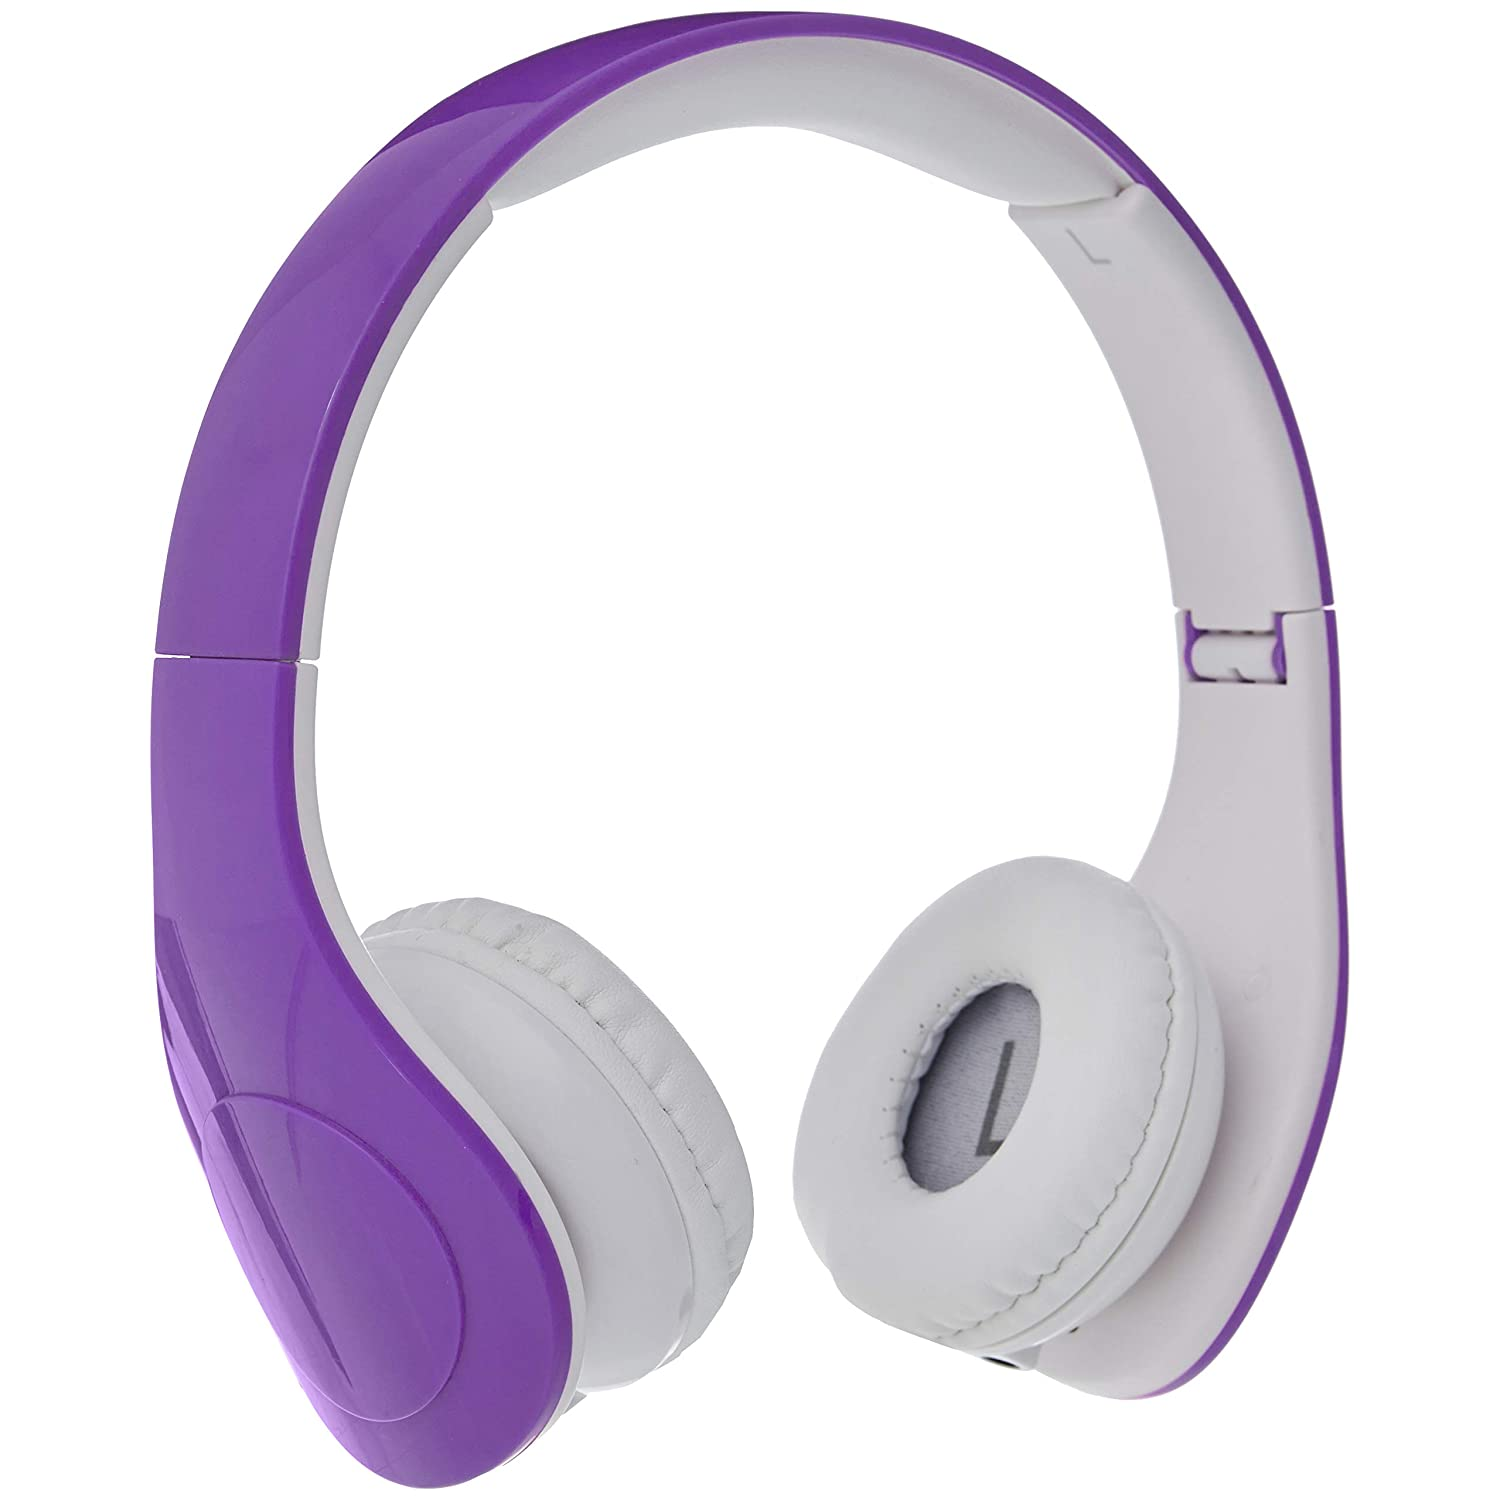 Headphones for Kids ONLY $7.99...